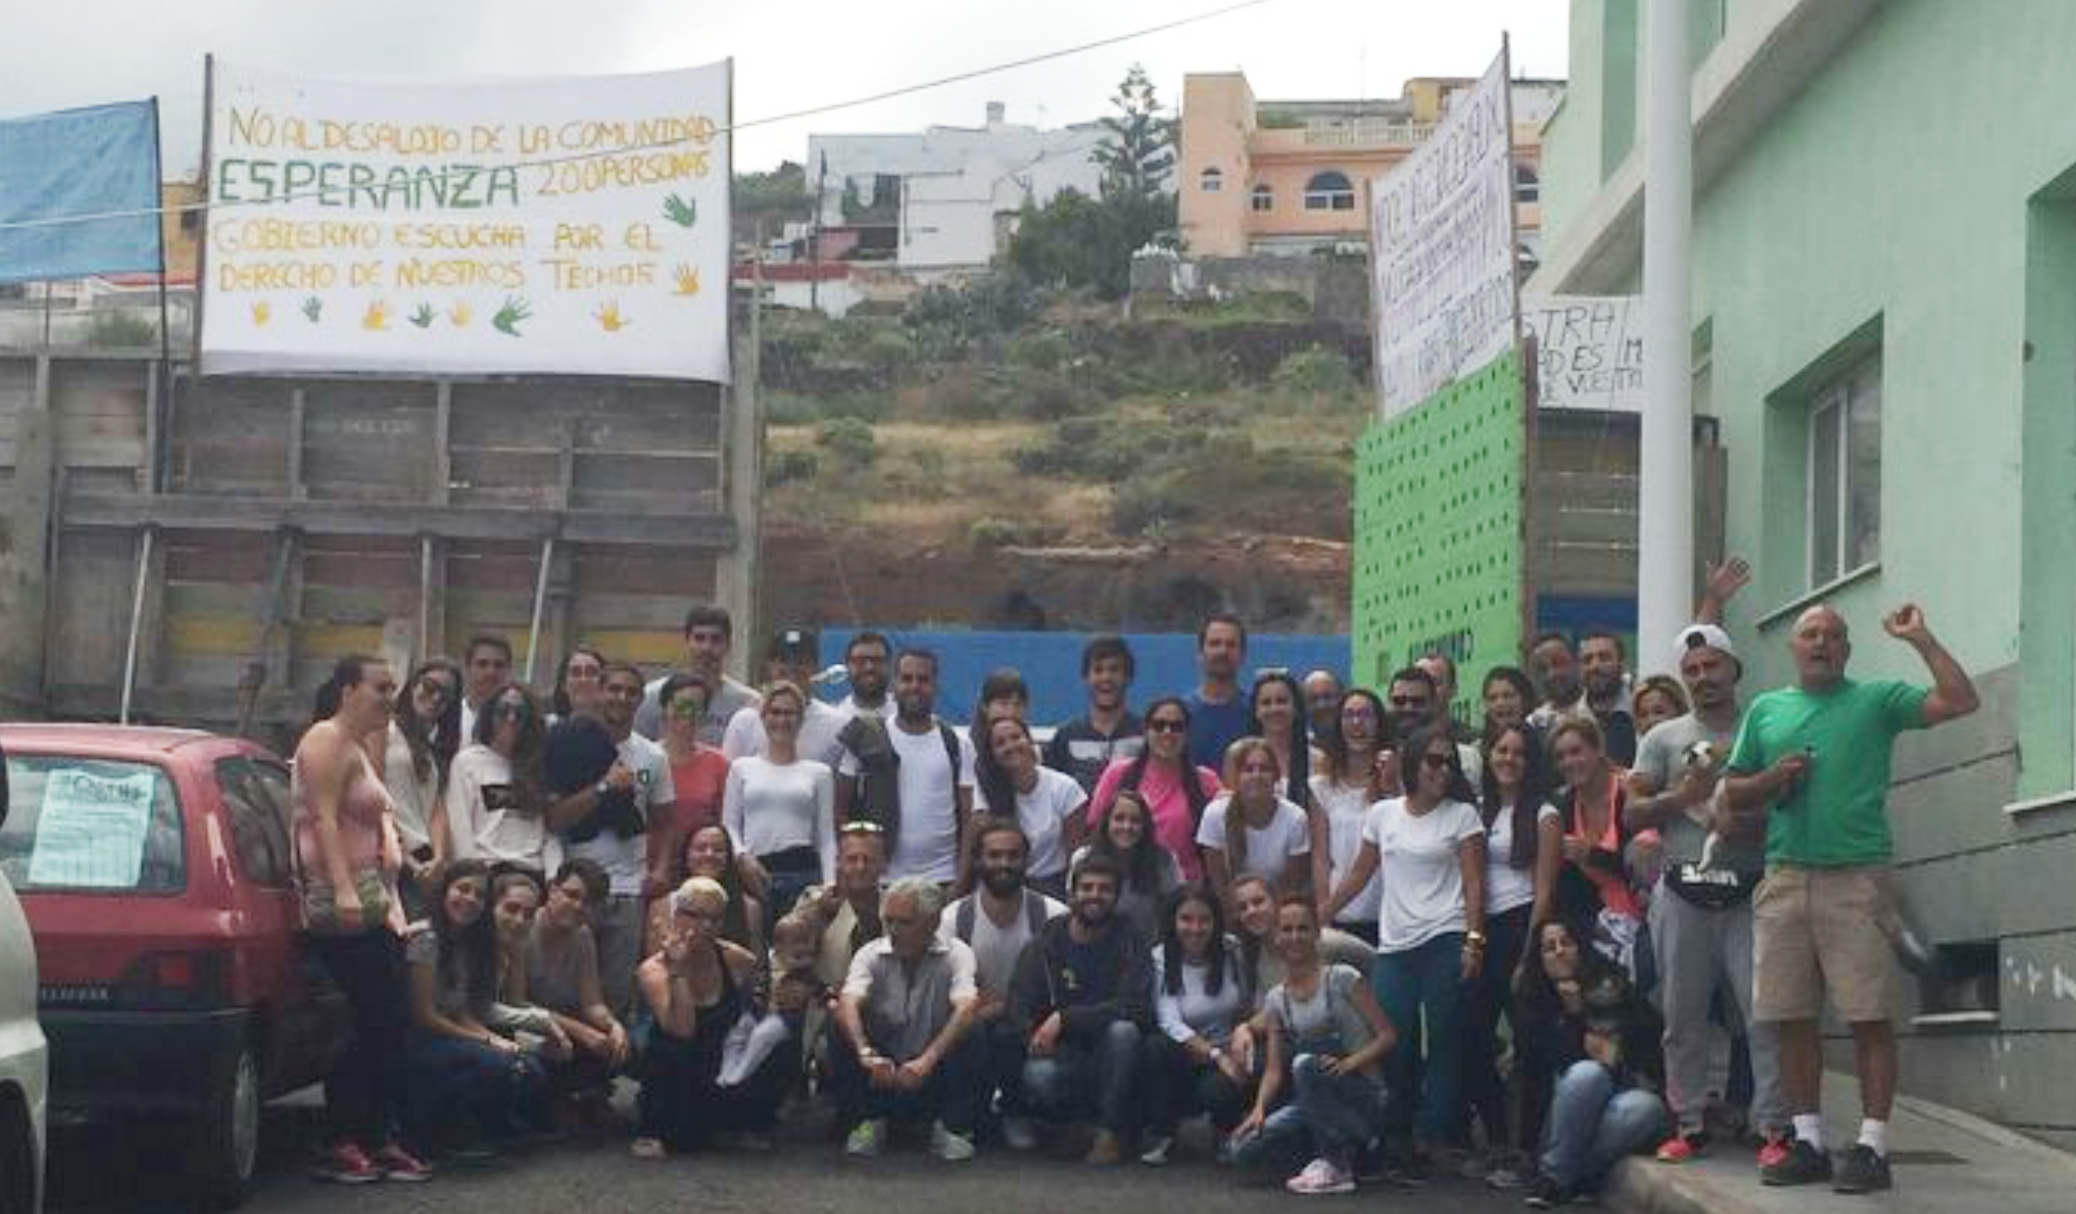 Esperanza, a self-managed occupation in Gran Canaria spanning four city blocks and home to 200+ people.